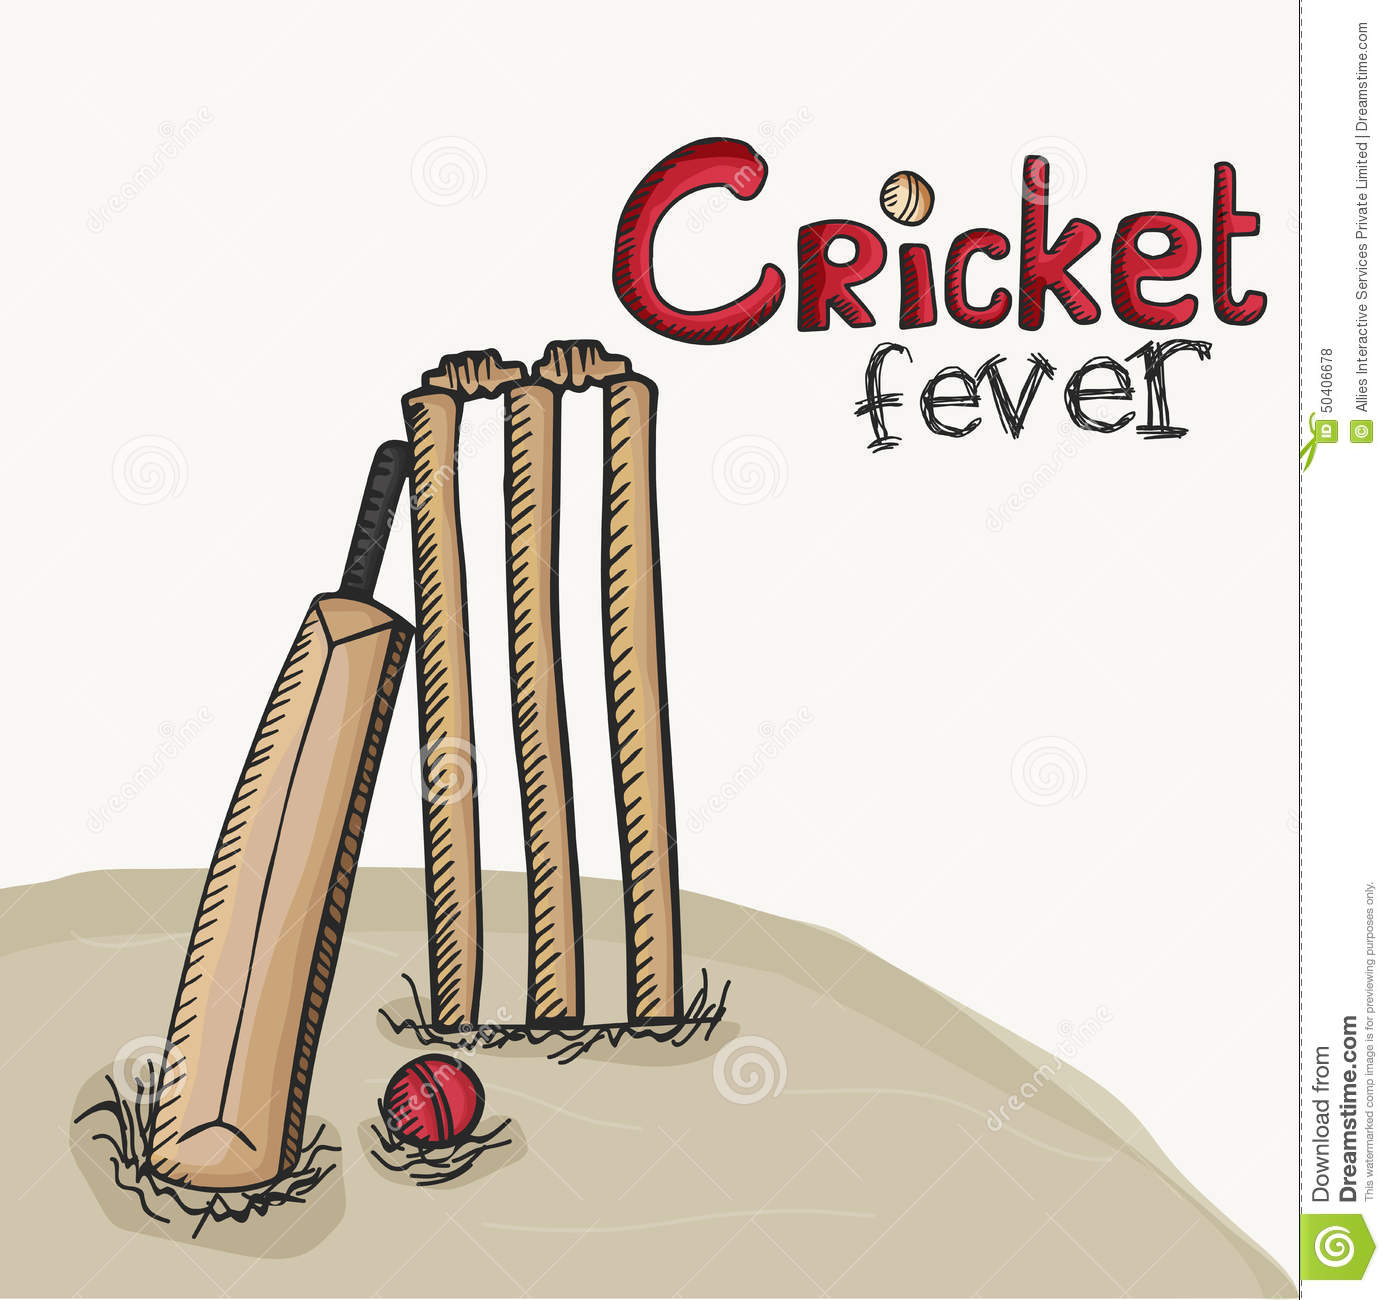 Cricket Bat With Ball And Wicket Stumps. Stock Photo - Image: 50406678